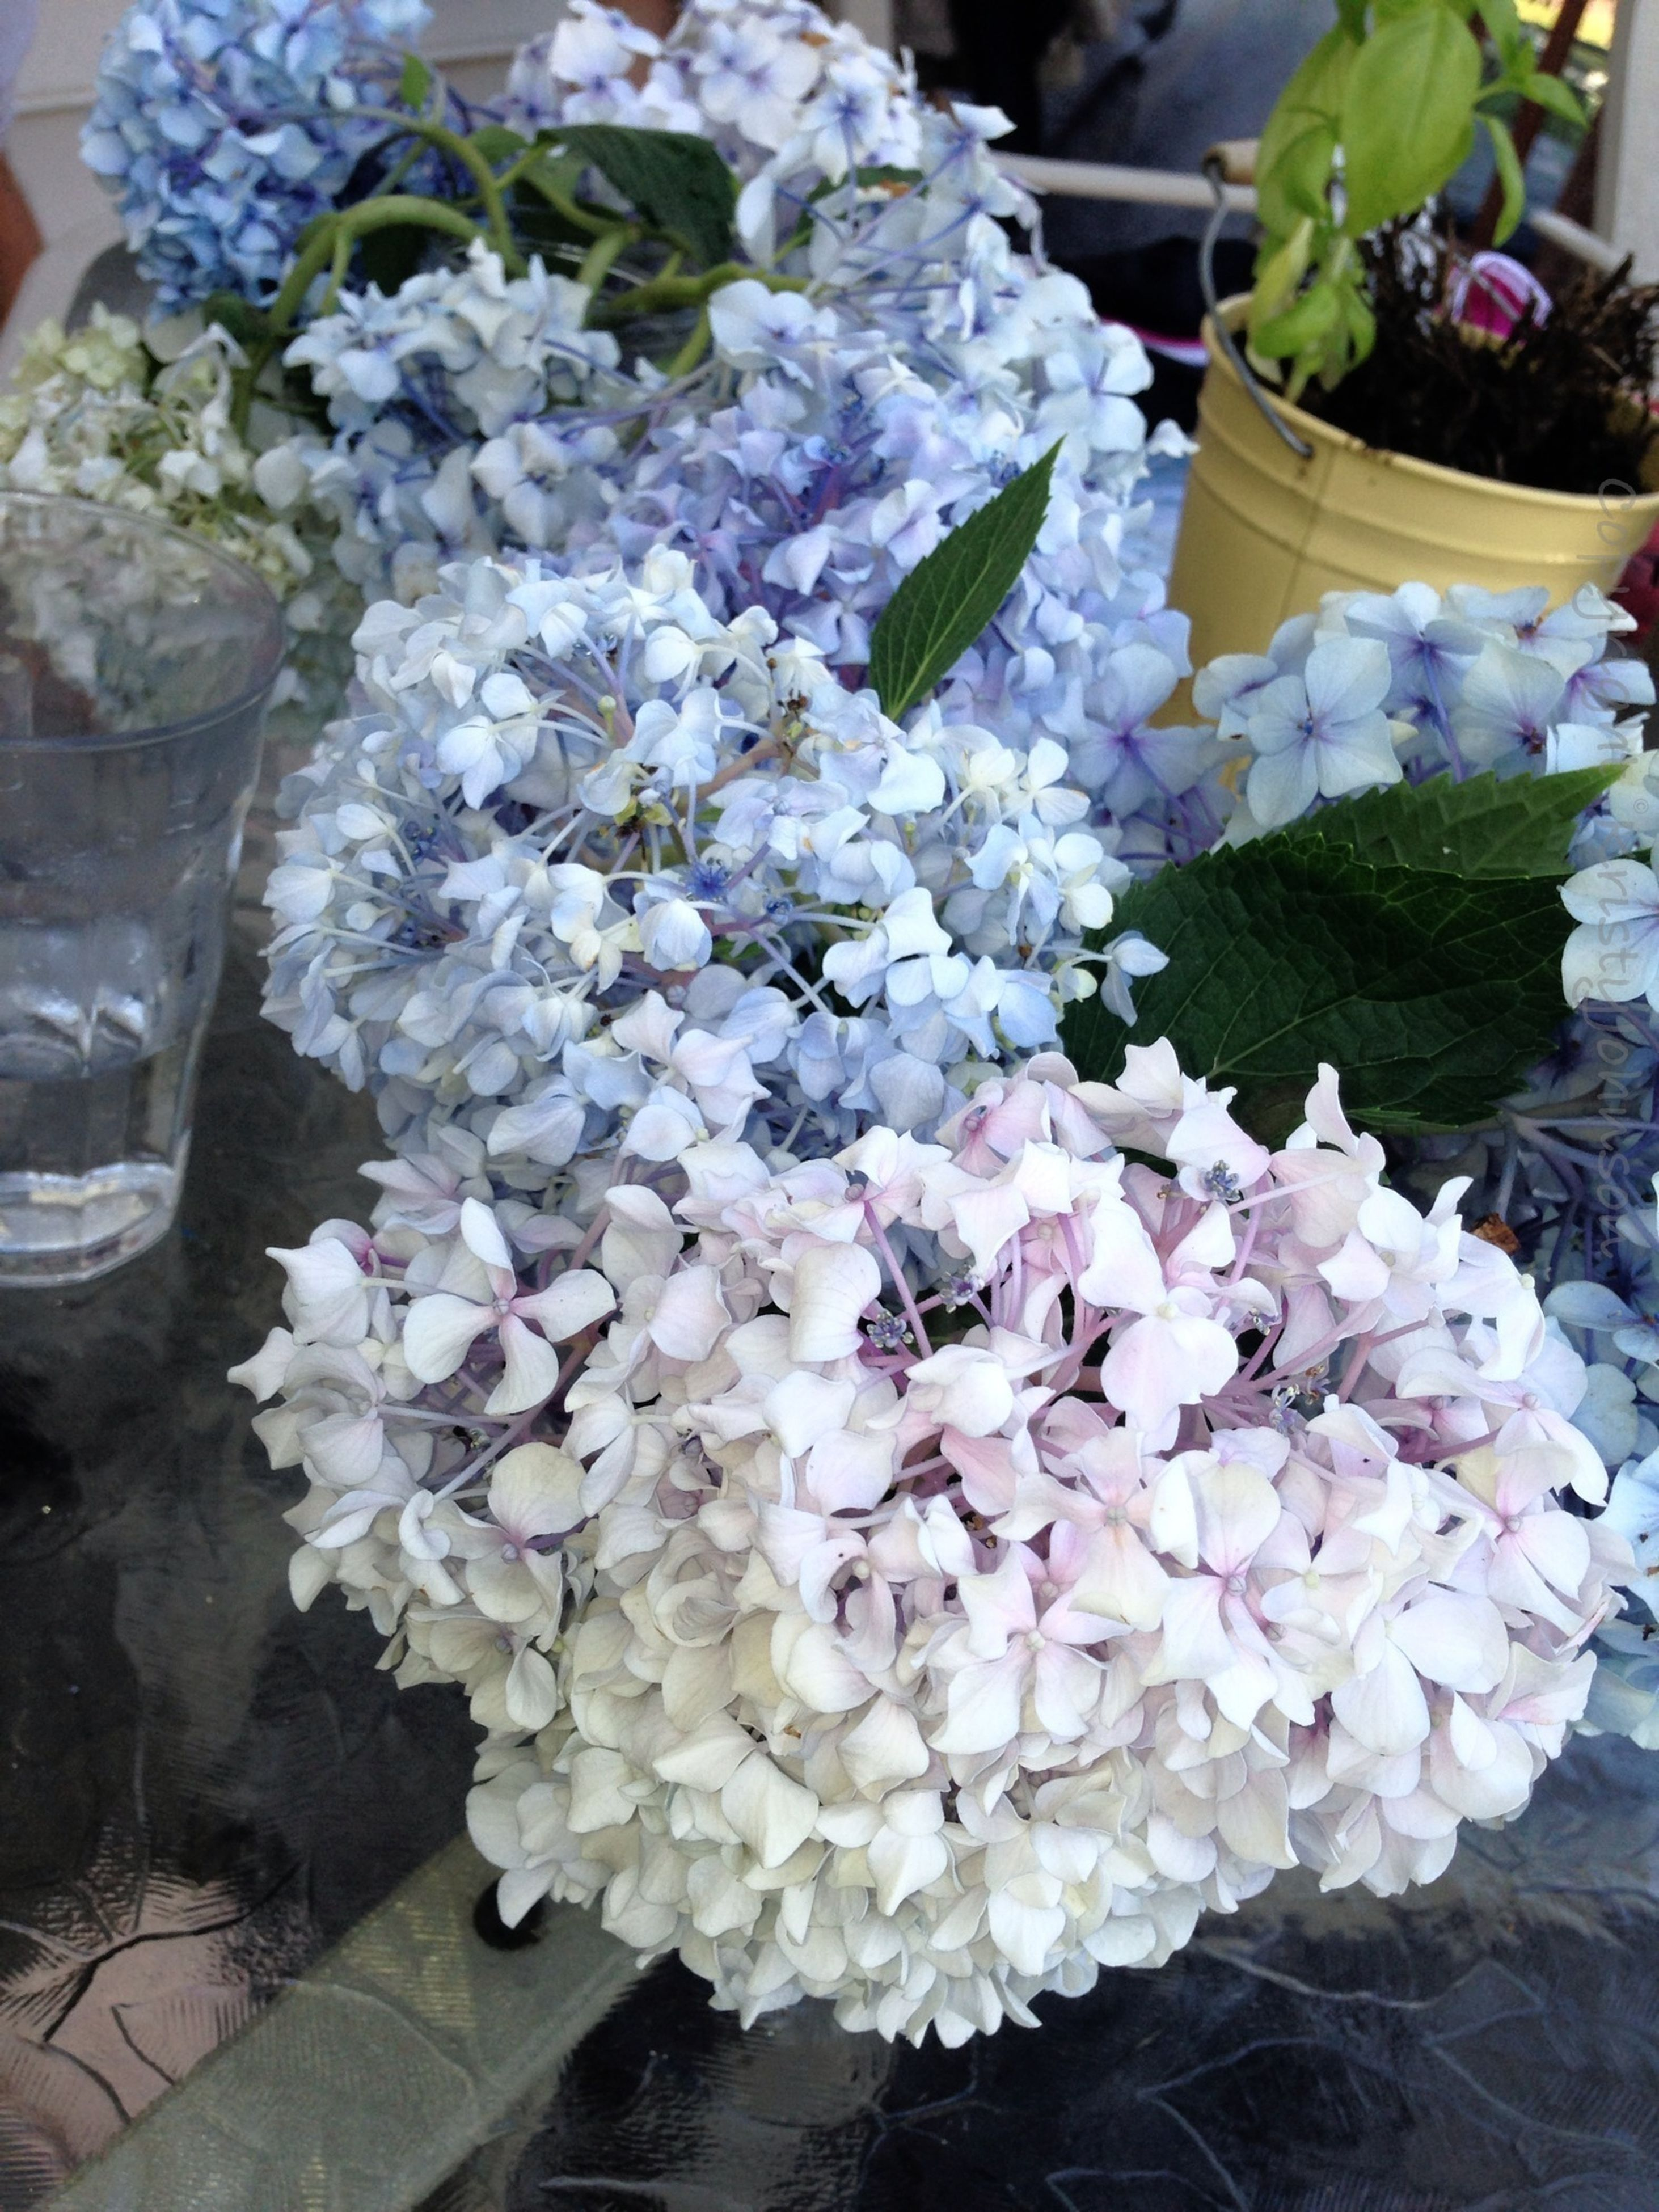 flower, freshness, fragility, petal, bouquet, bunch of flowers, flower head, beauty in nature, indoors, high angle view, for sale, variation, close-up, growth, flower arrangement, nature, pink color, plant, vase, abundance